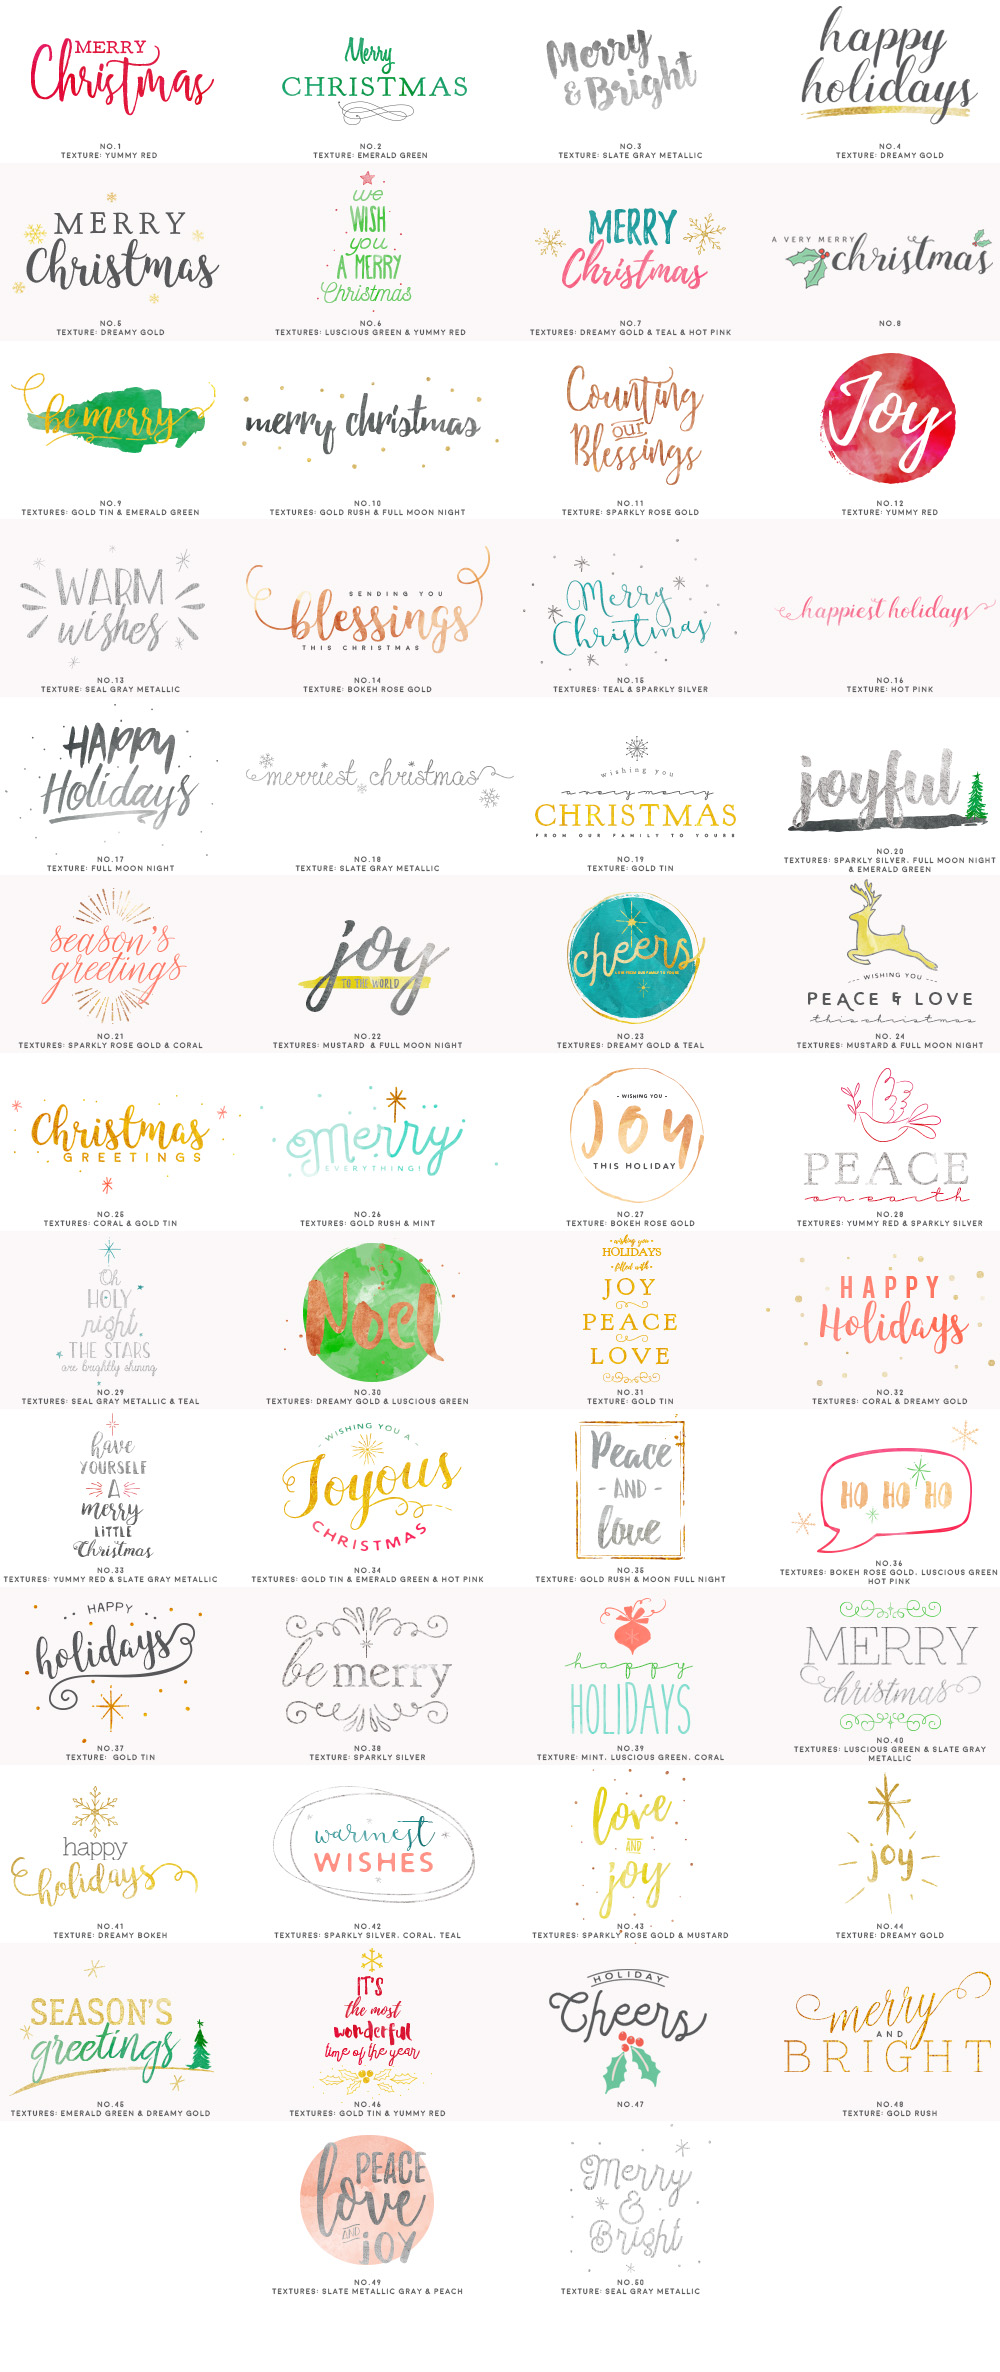 Design your own Christmas Cards example image 2